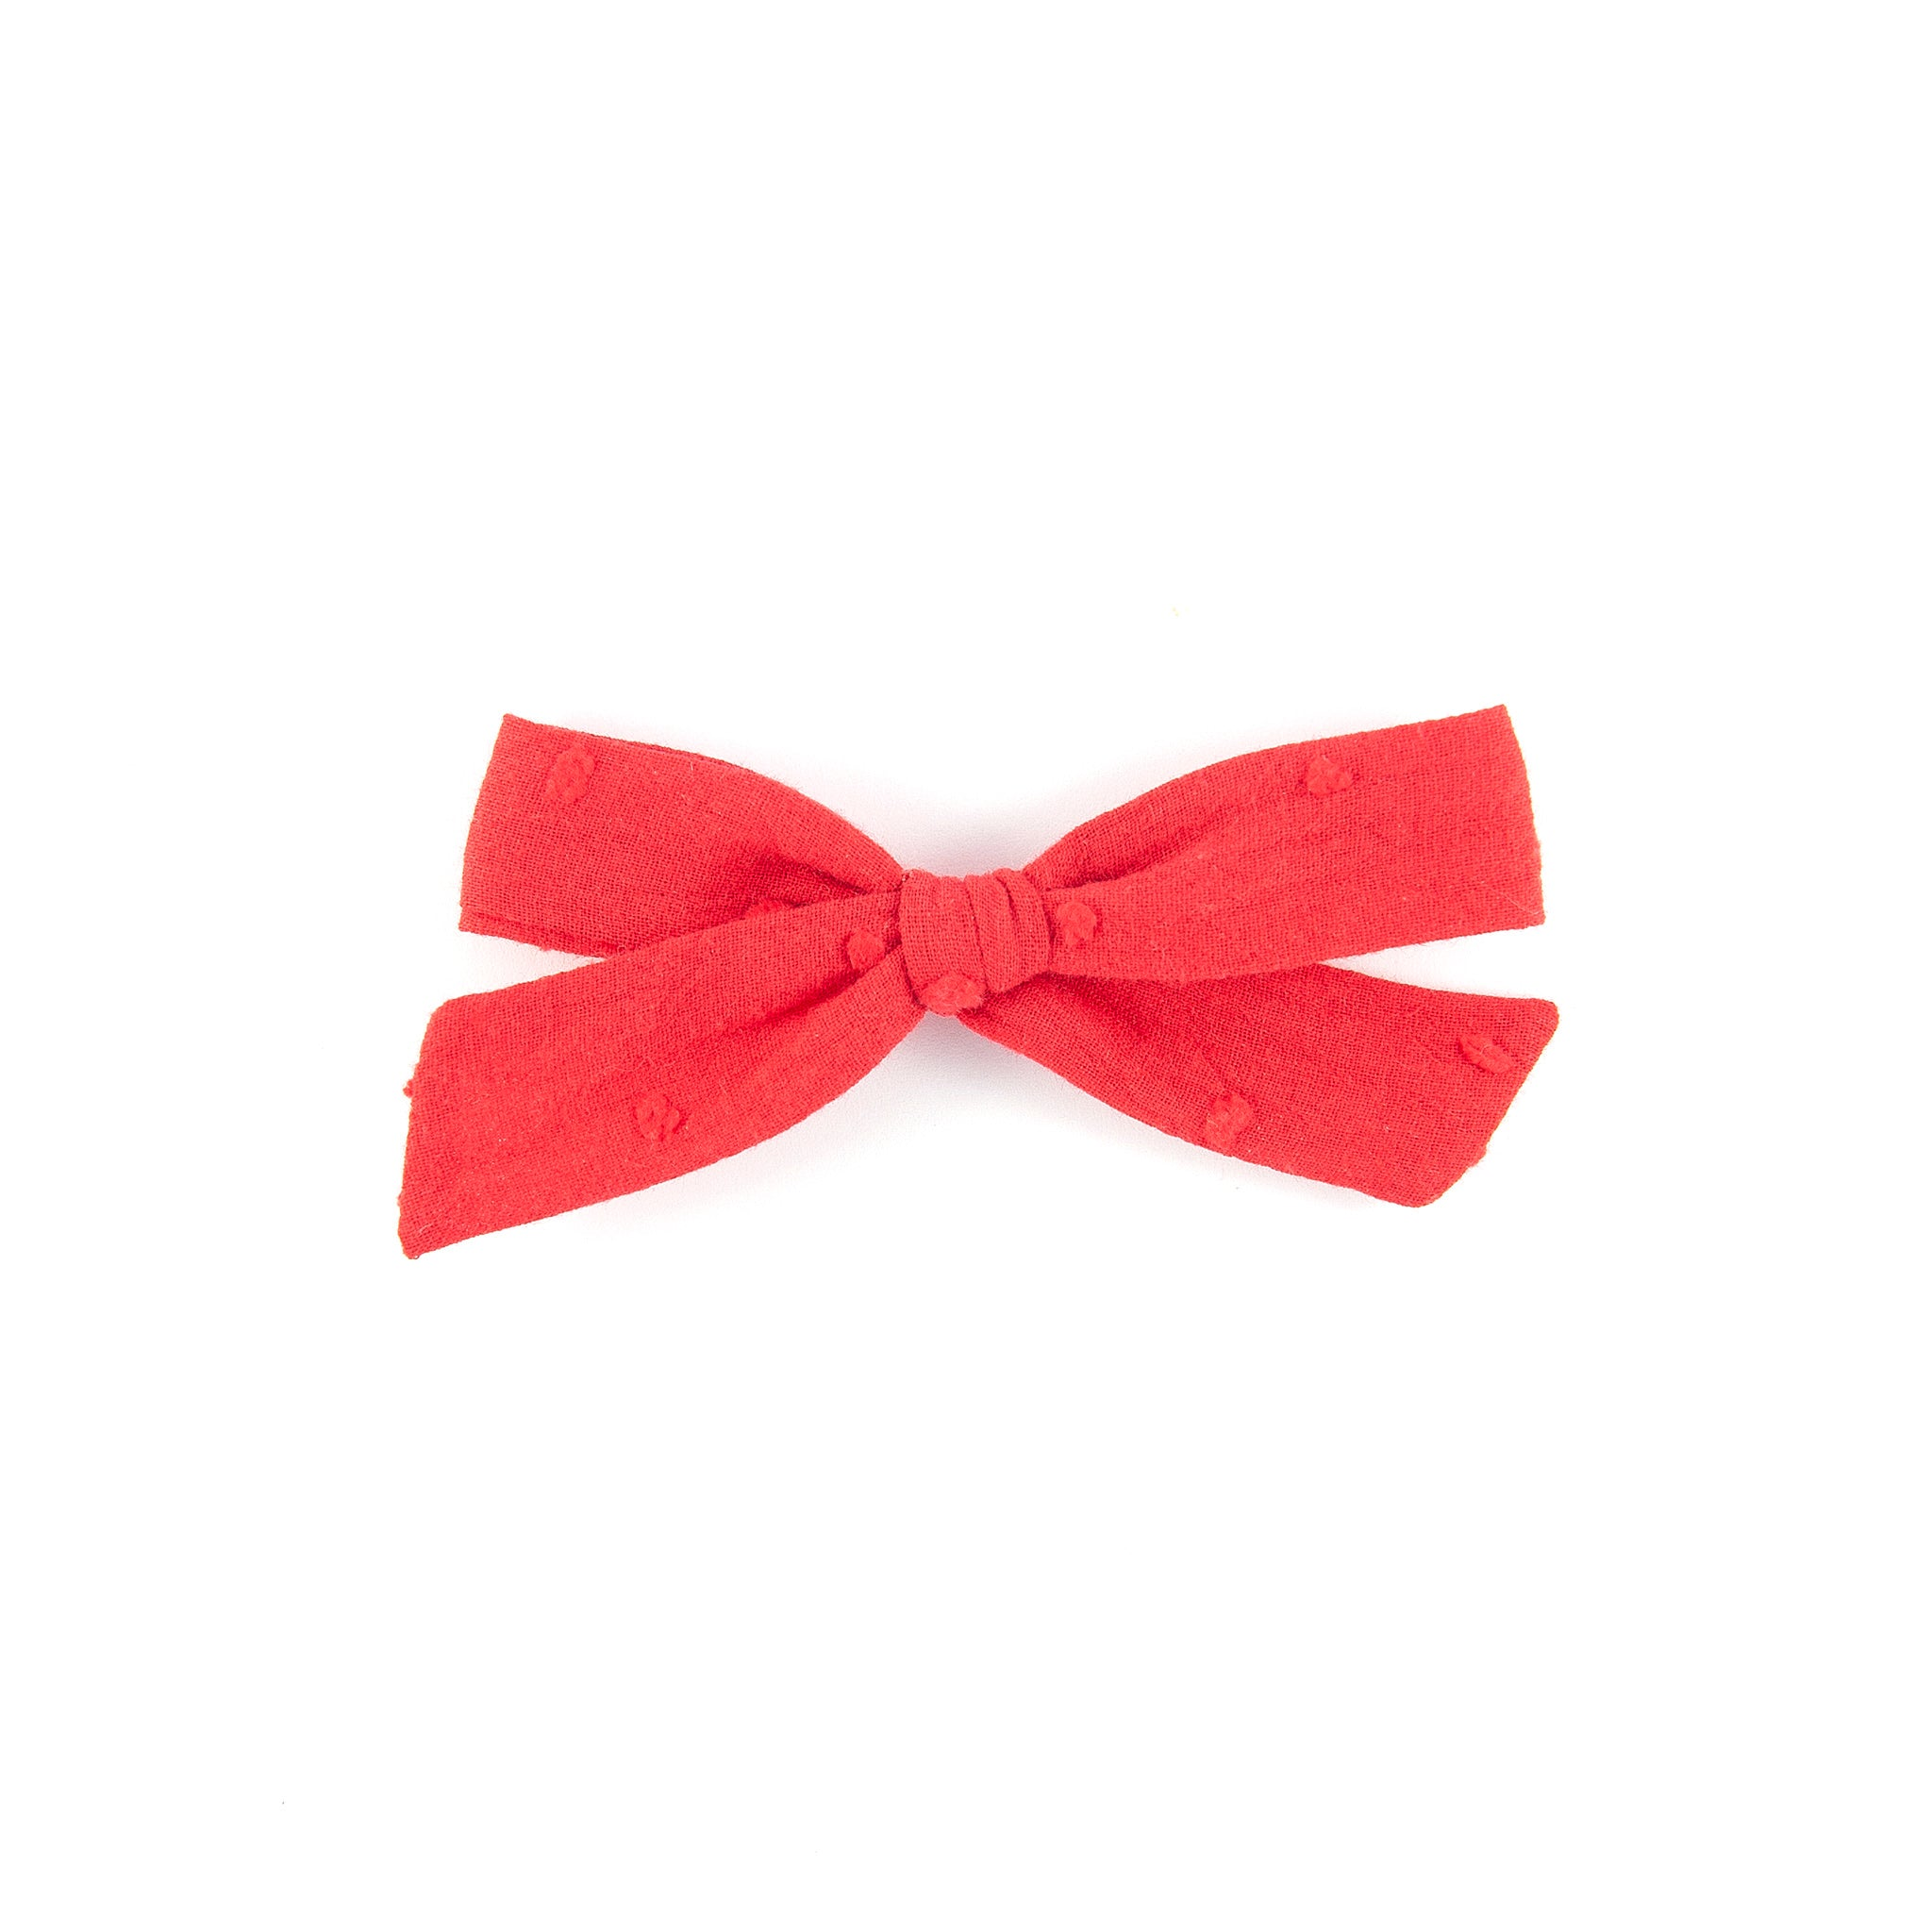 Pigtail Bow - Swiss Dot Cotton - Red (Valentine Collection)